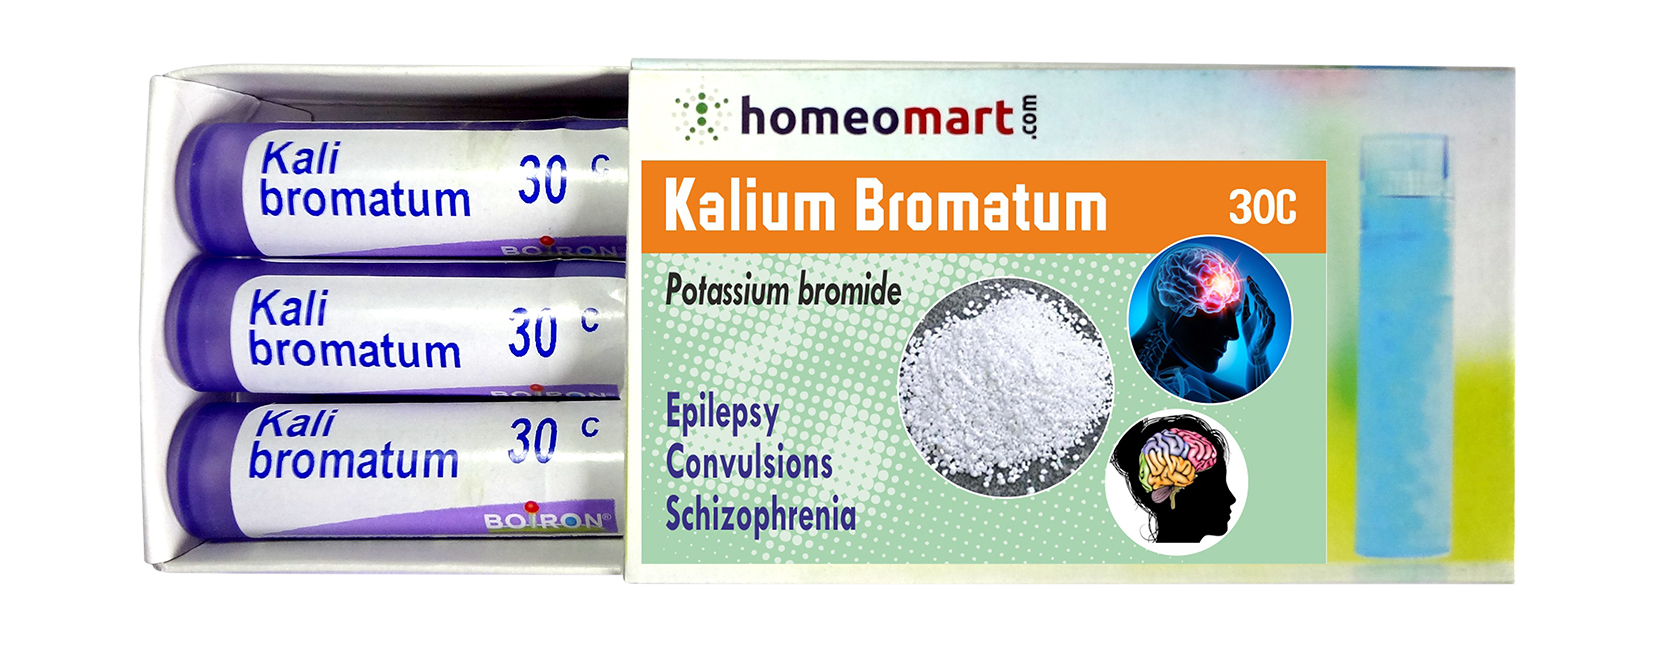 Homeopathy Kalium Bromatum Remedy Kit for Epilepsy, Convulsion - Homeopathy  Remedies